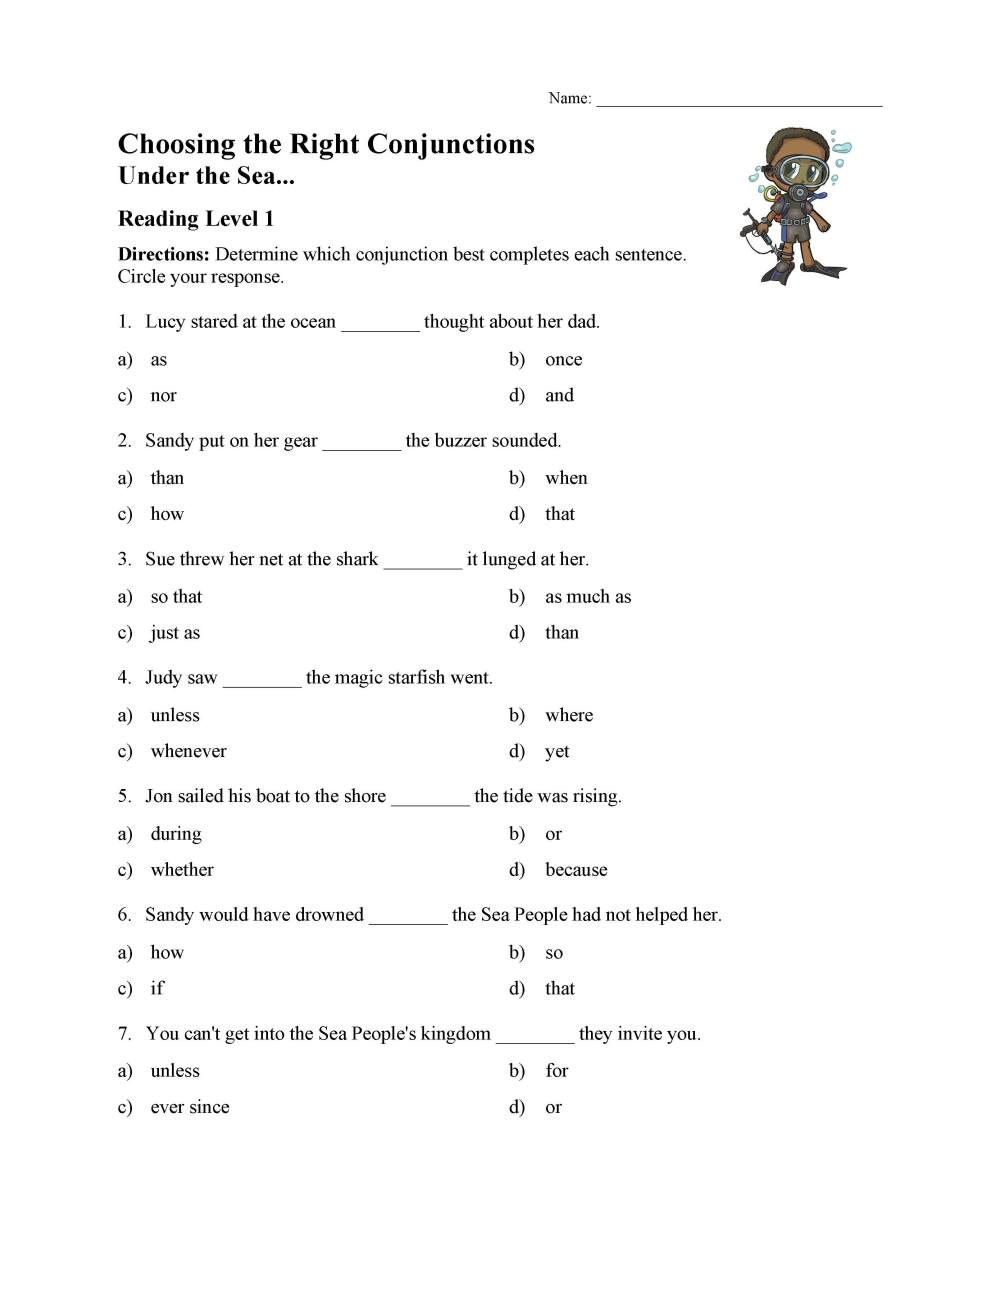 medium resolution of Choosing the Right Conjunction Worksheet - Reading Level 1   Preview